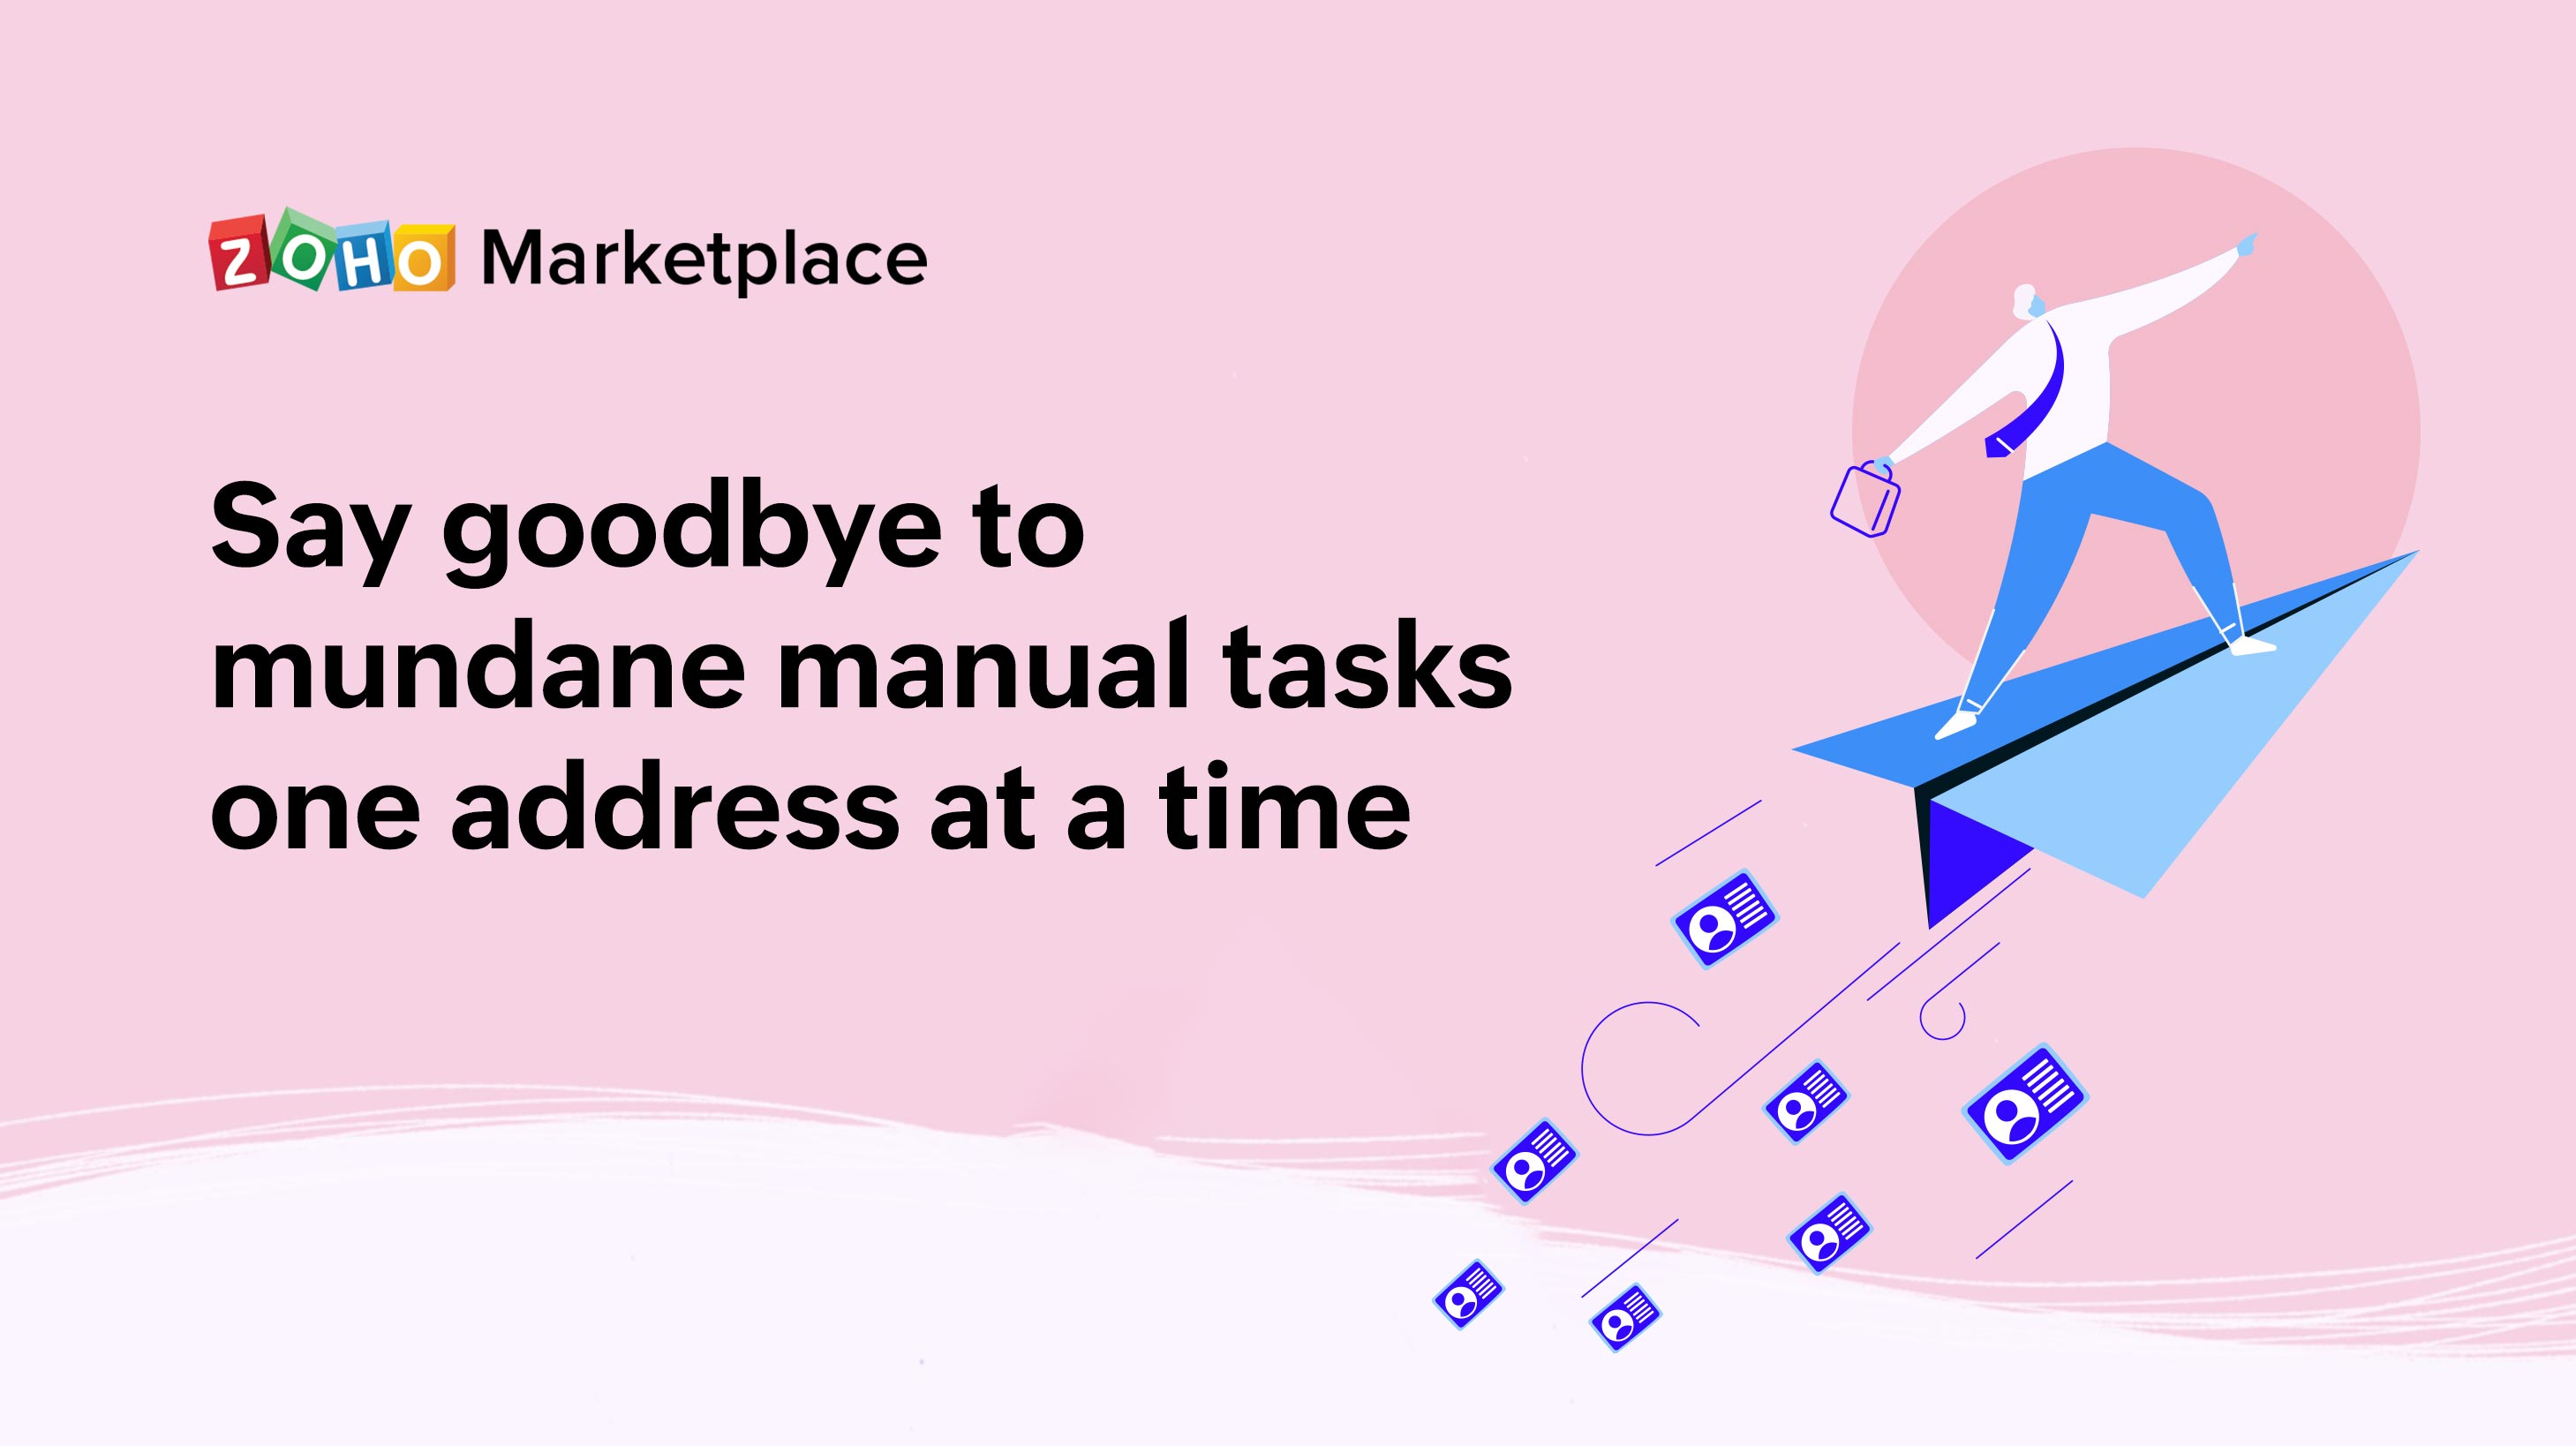 Say goodbye to mundane manual tasks one address at a time